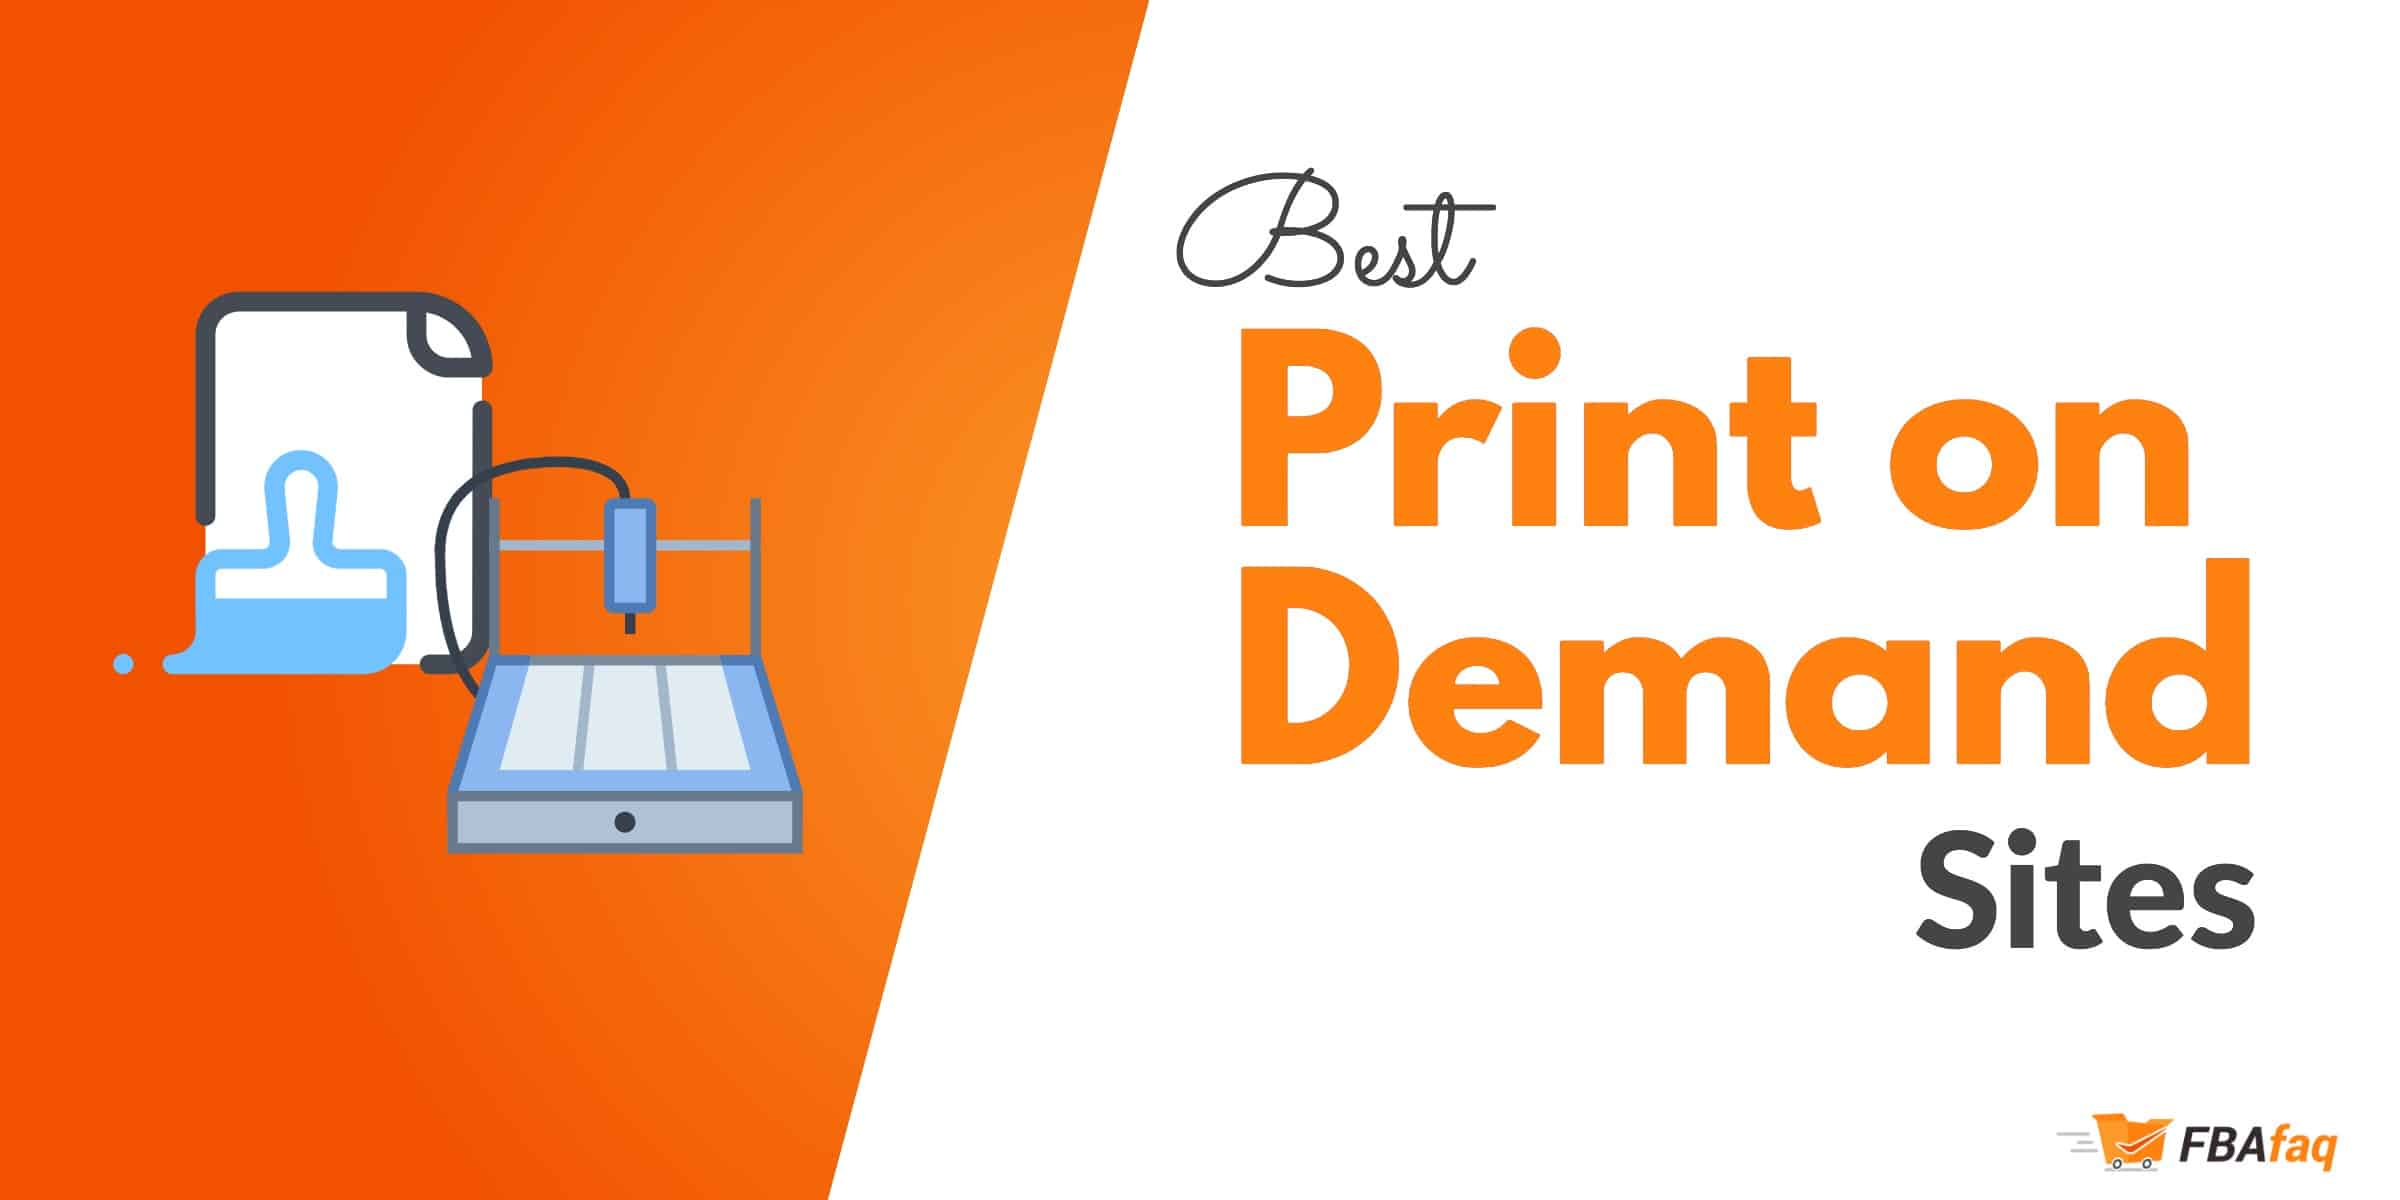 best print on demand sites 2018 pod t shirt companies